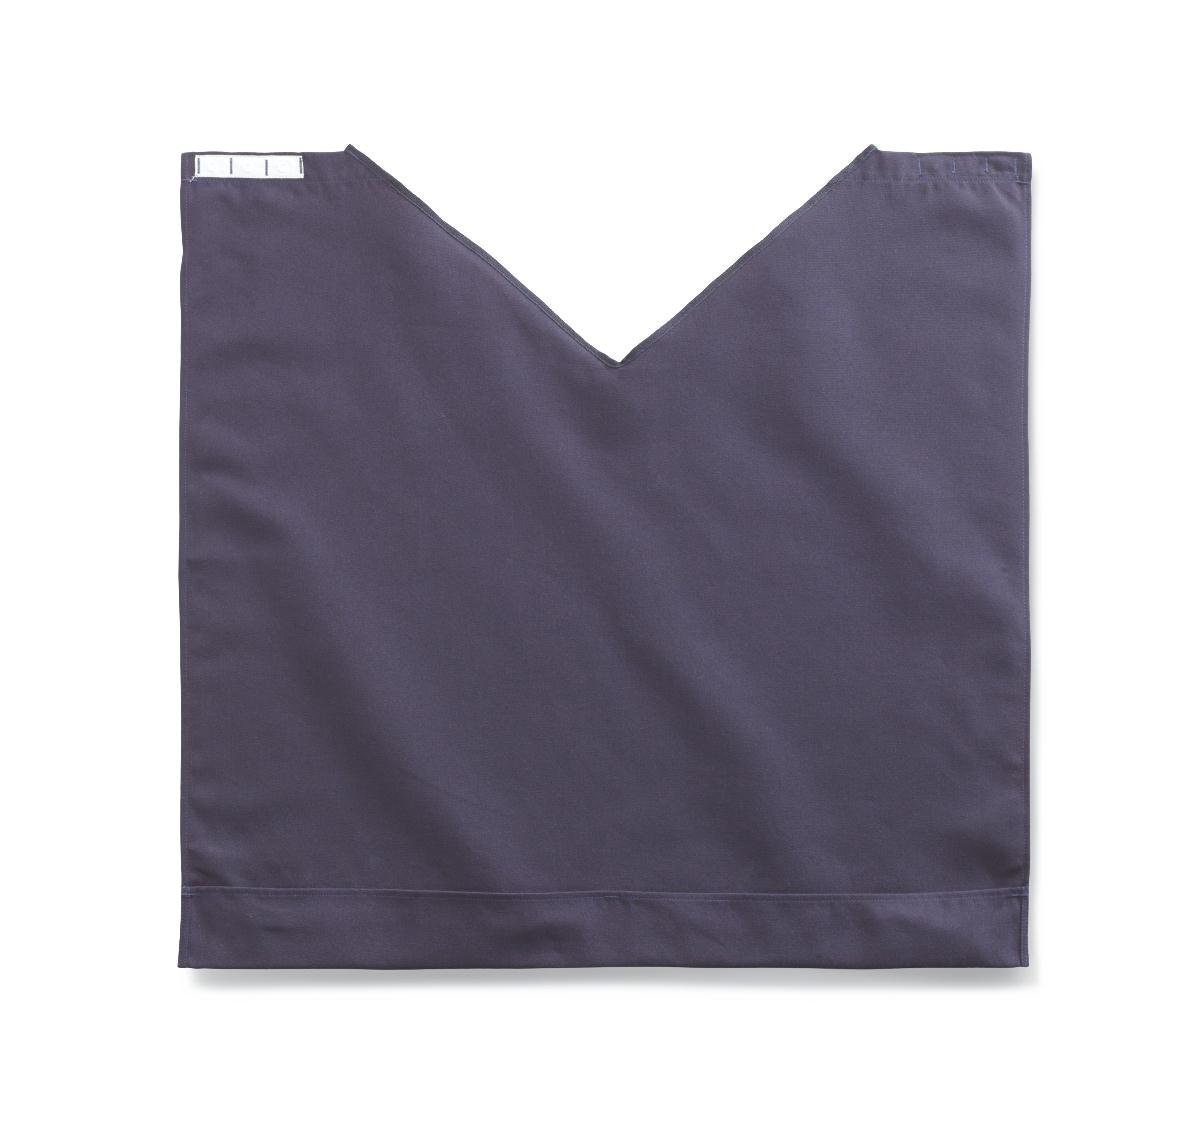 Medline MDT014118NAVY Comfort Fit Dignity Napkin with Snap Closure, 27.5'' x 27'', Navy Blue (Pack of 24)